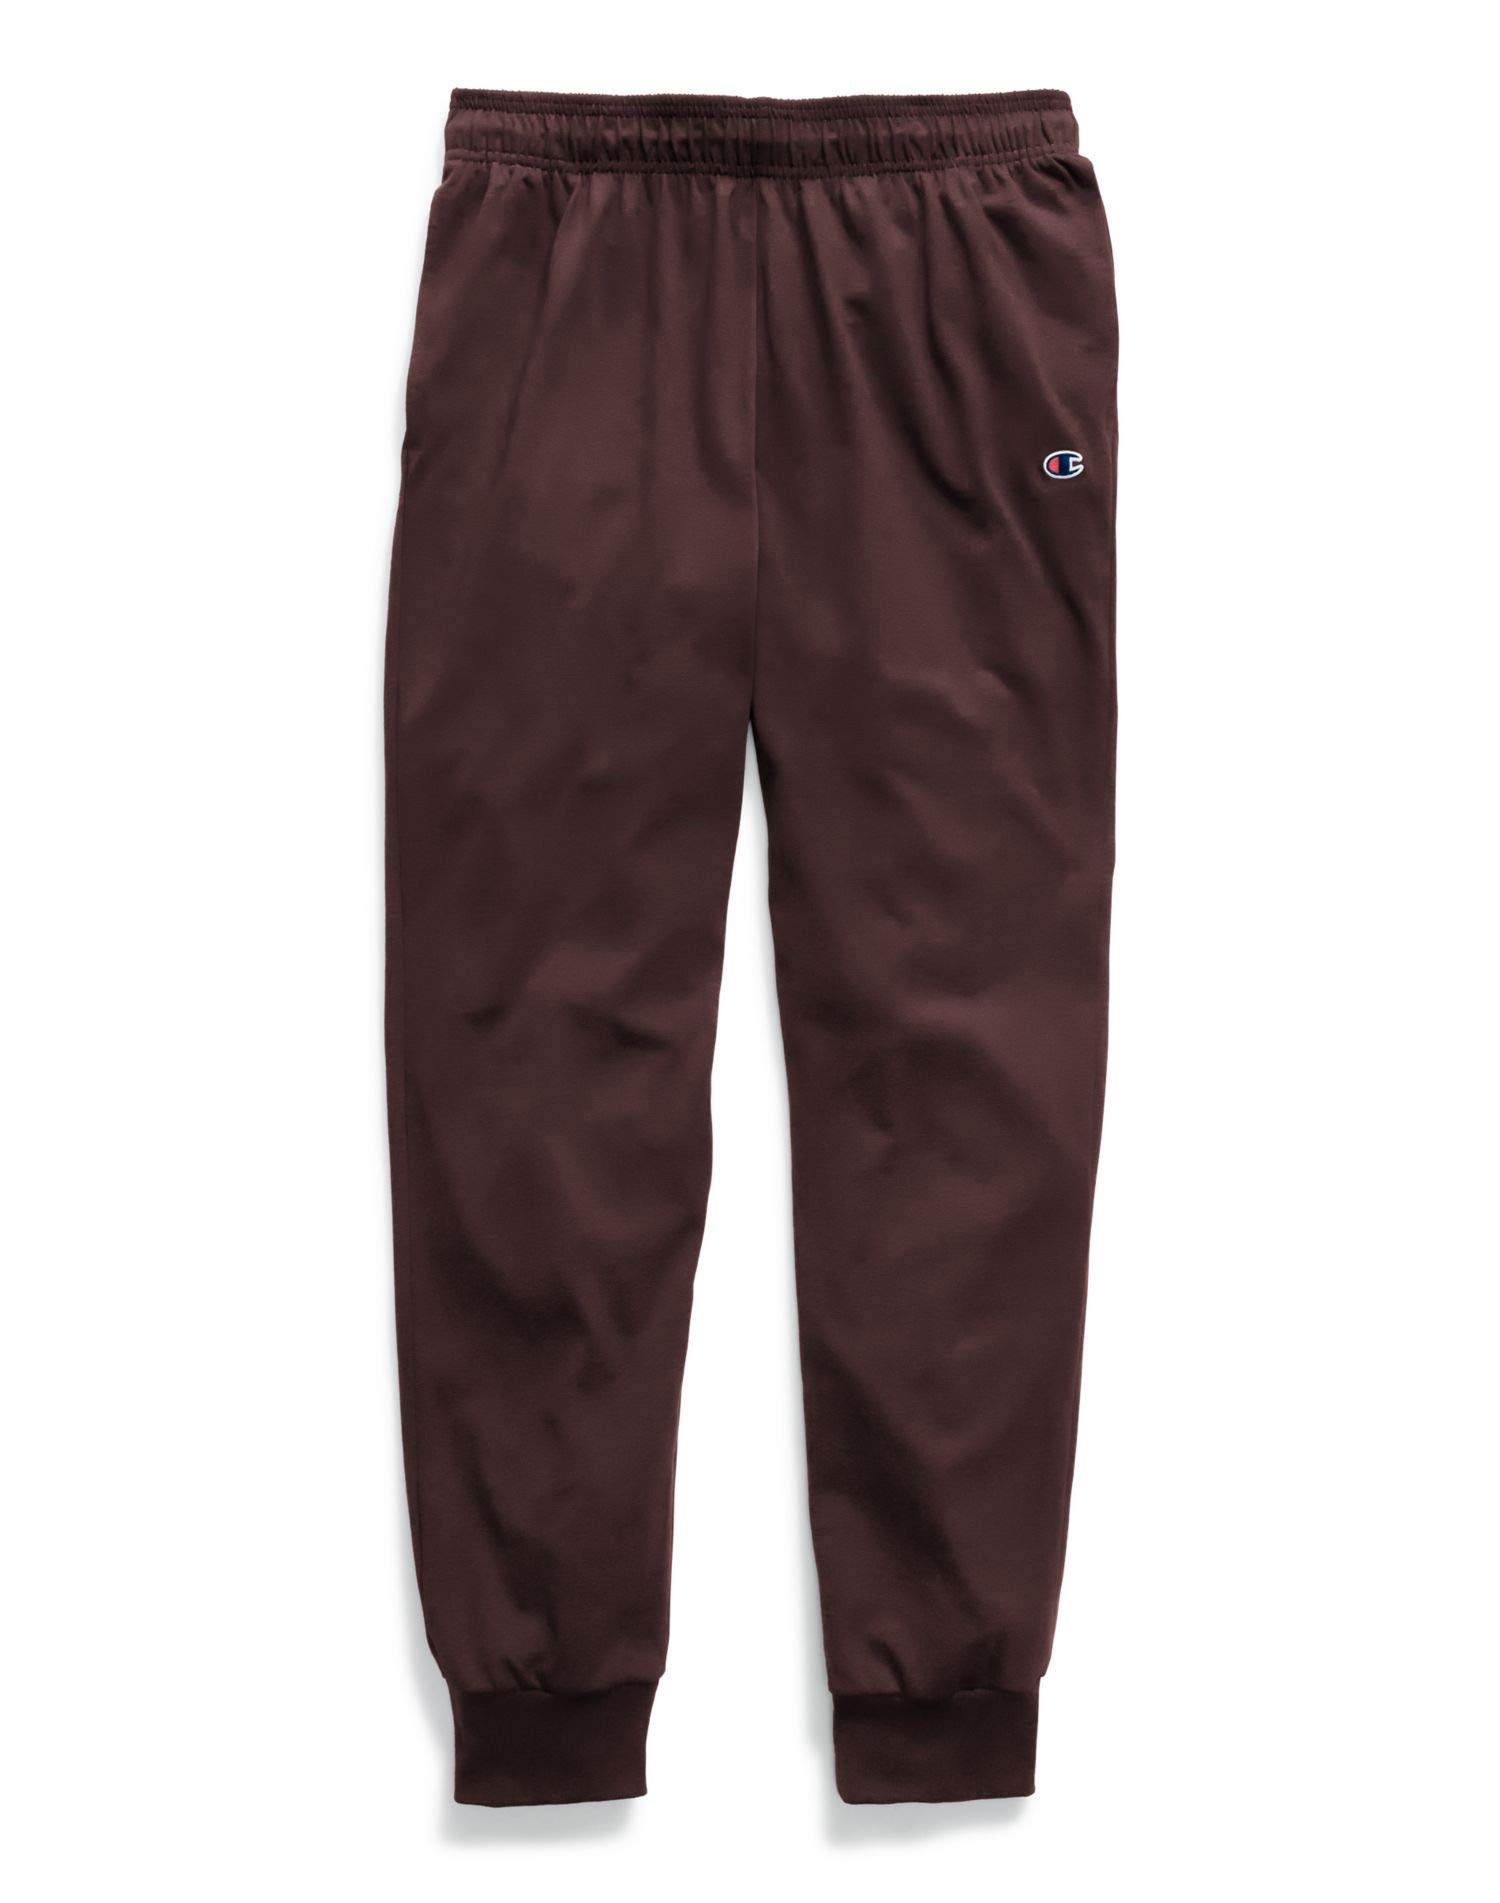 Champion Men's Jersey Jogger, Maroon, Large by Champion